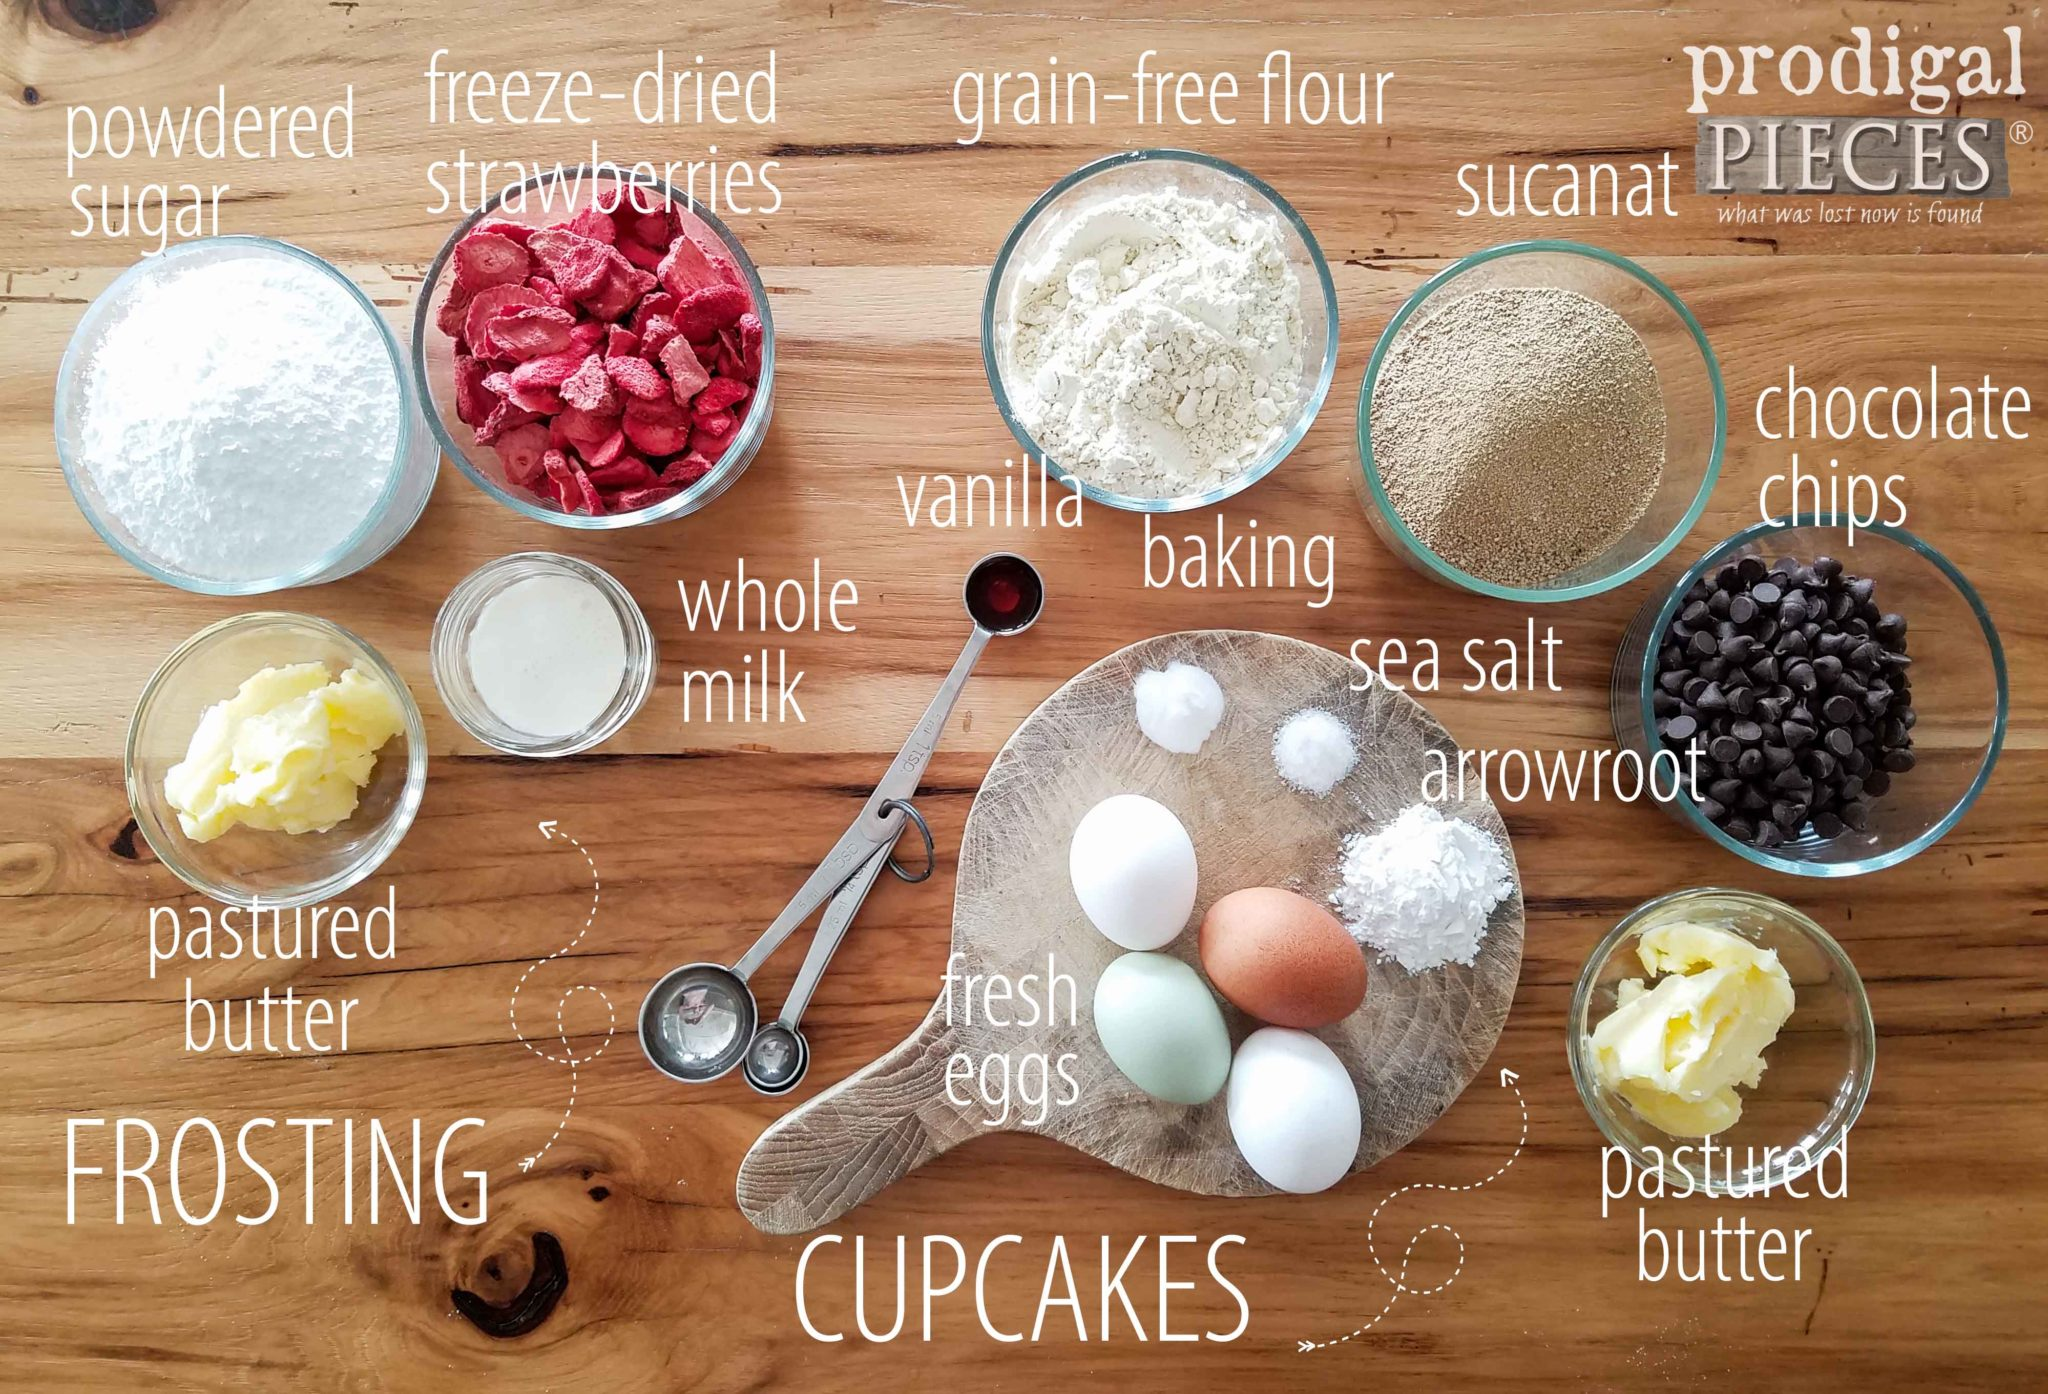 Natural Ingredients for Grain-Free Chocolate Cupcake Dessert by Larissa of Prodigal Pieces | prodigalpieces.com